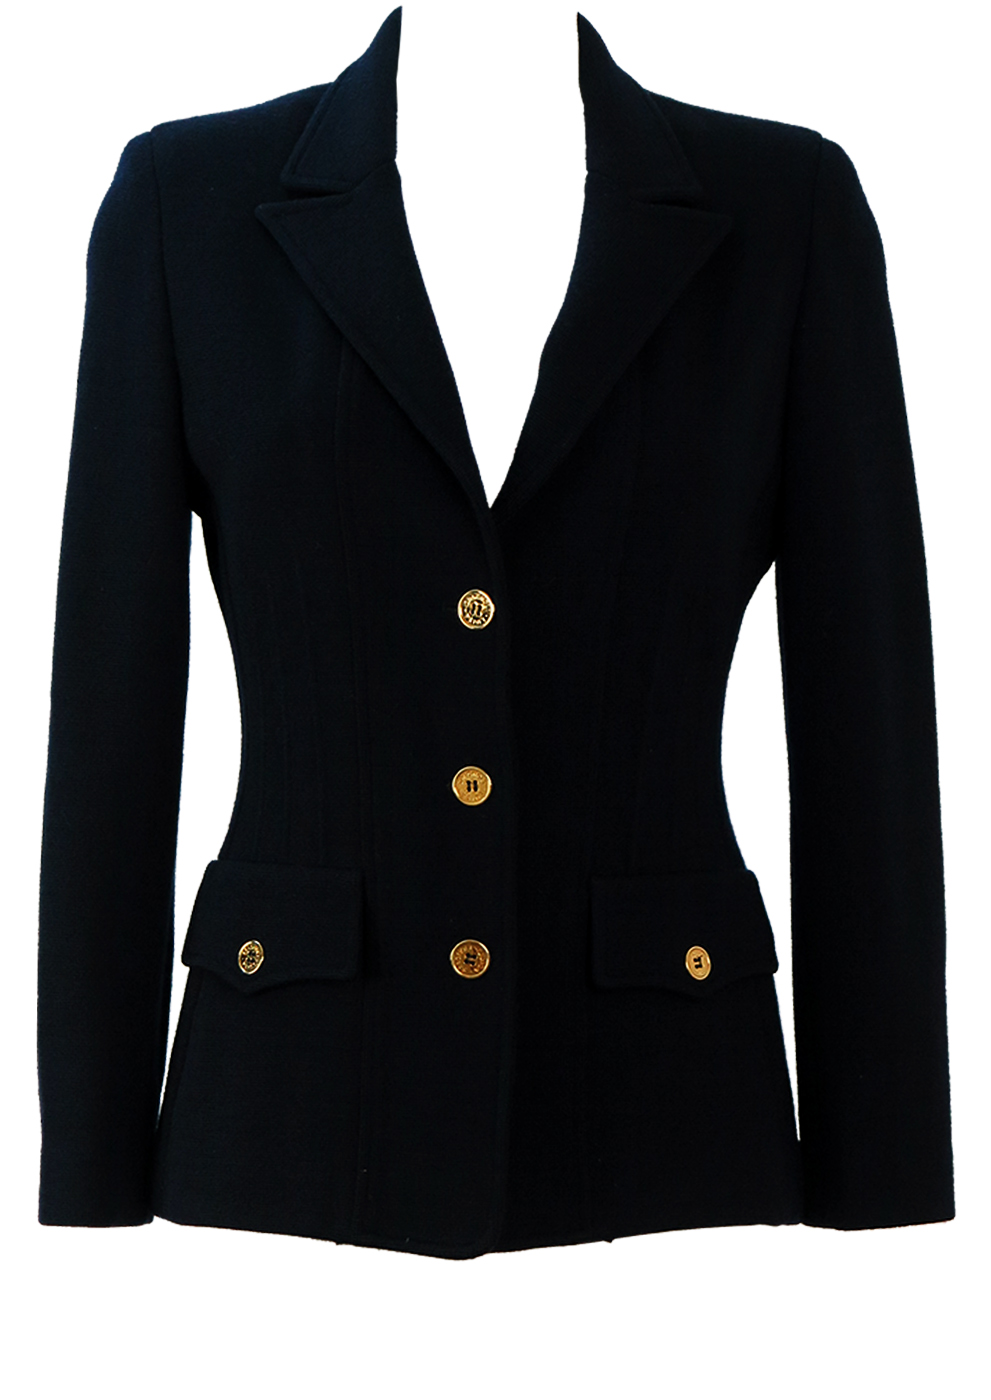 3190b05827 Luisa Spagnoli Pure Wool Navy Blue Jersey Blazer with Gold Buttons - S